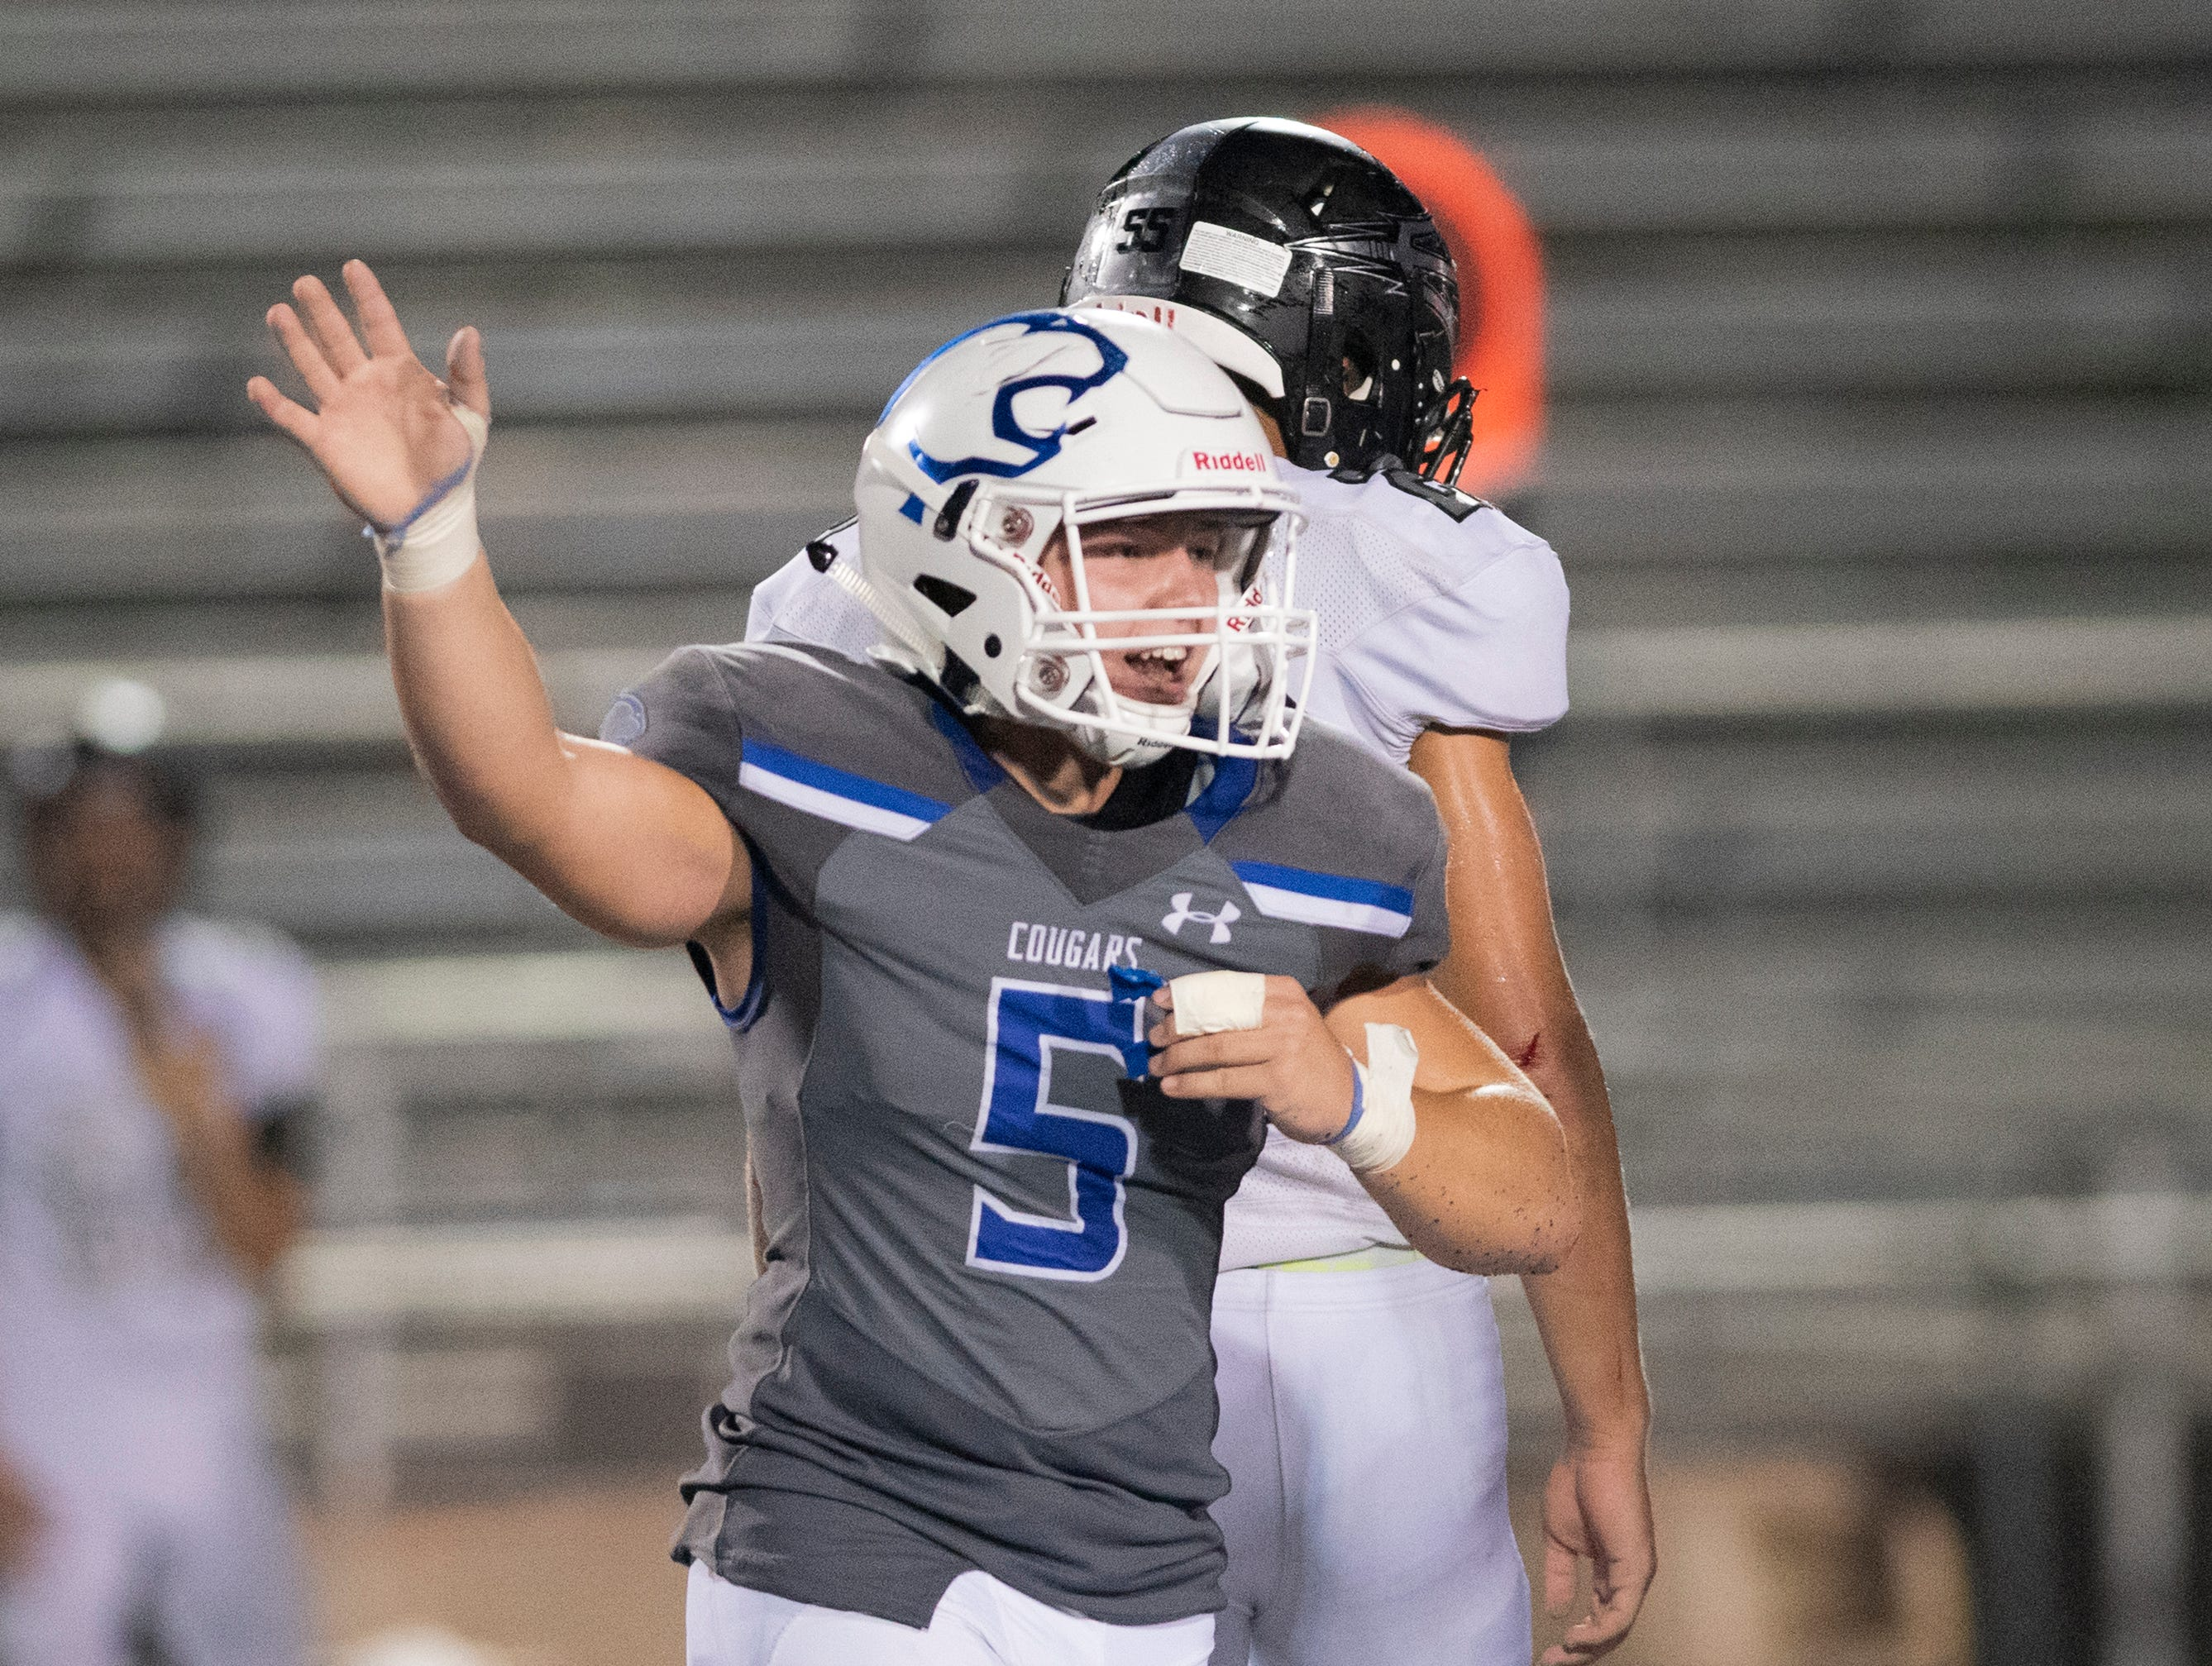 Cole Vandergrift of Barron Collier celebrates his team coming up with a Mariner fumble during the game at Barron Collier High Friday night, September 21, 2018.